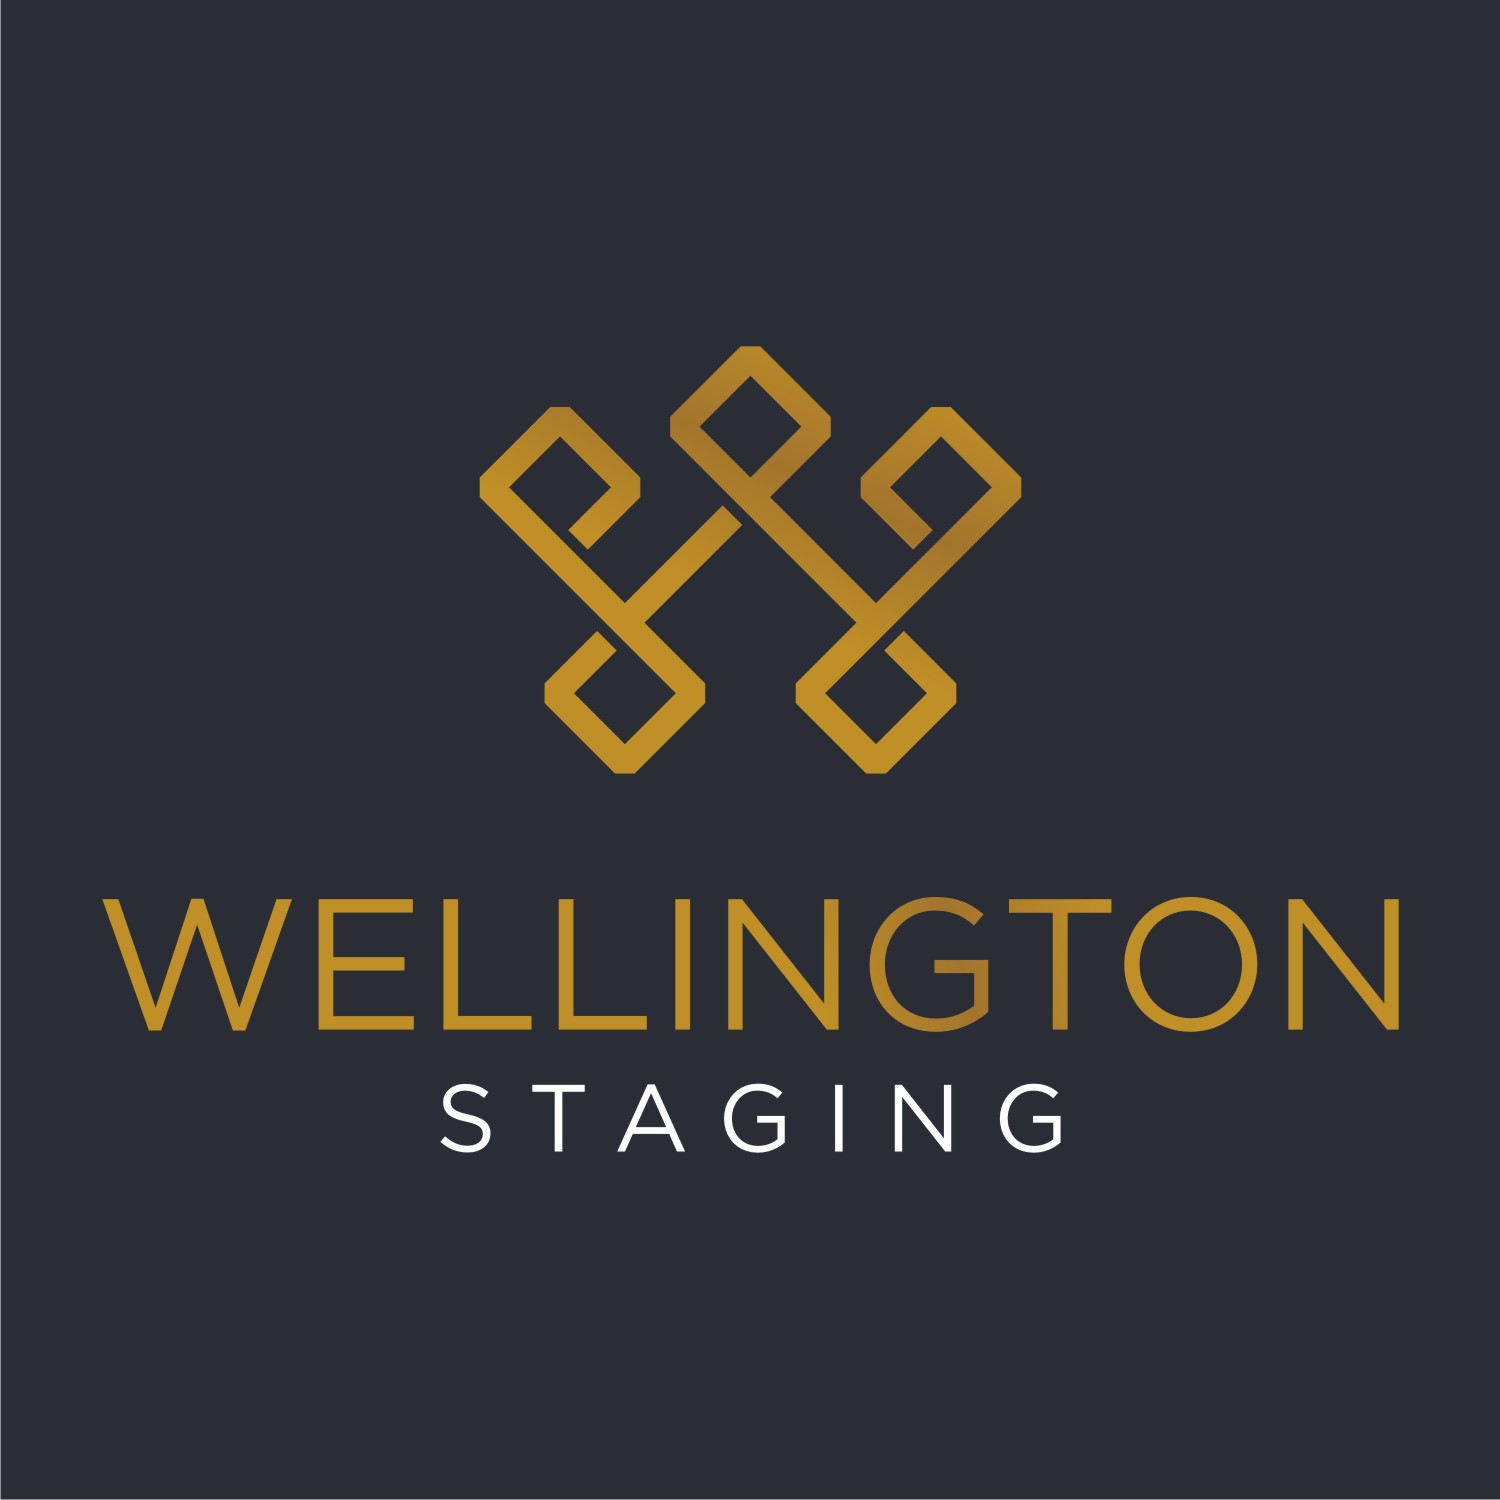 Design and staging company for private residences needs a logo